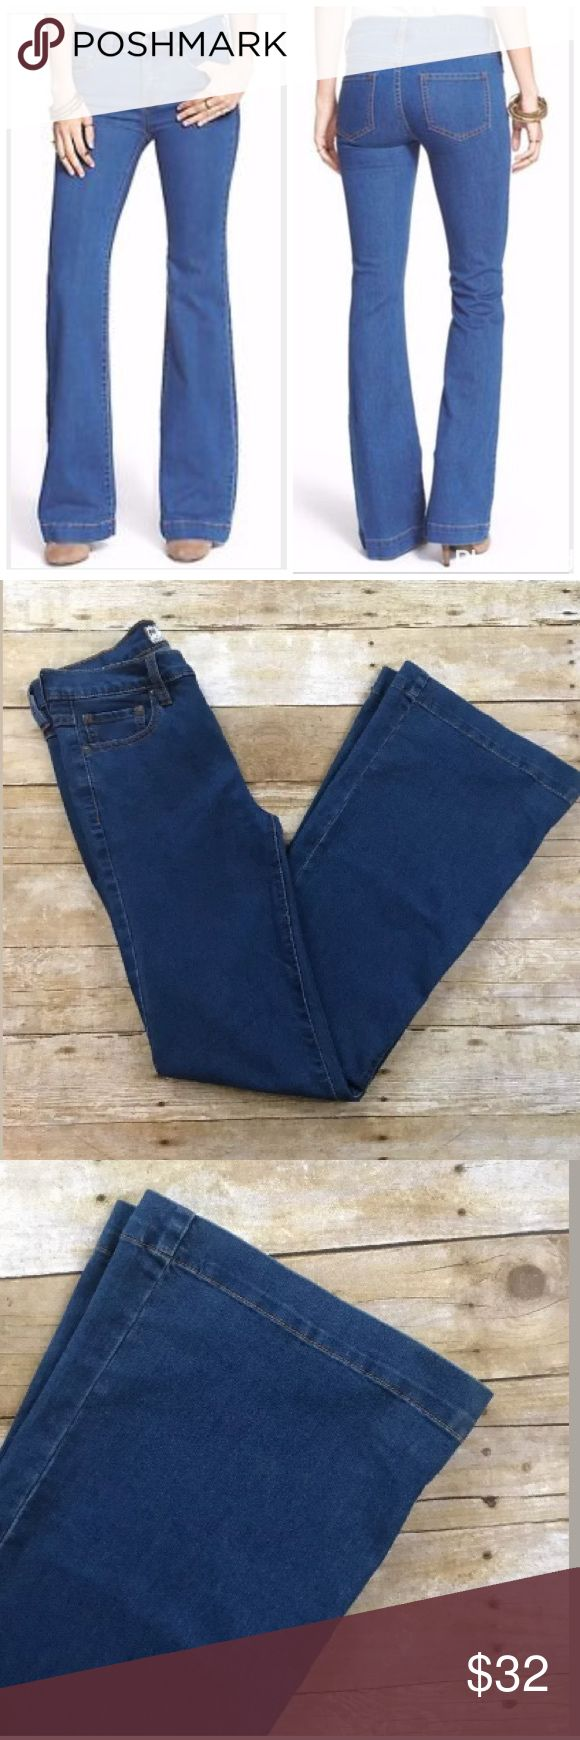 """Free People Dallas Stretch Flare Leg Jeans Free People Dallas Stretch Flare Leg Jeans, Size 28. Gently worn, no flaws  Waist 15"""" across  Inseam 33"""" Free People Pants Boot Cut & Flare"""